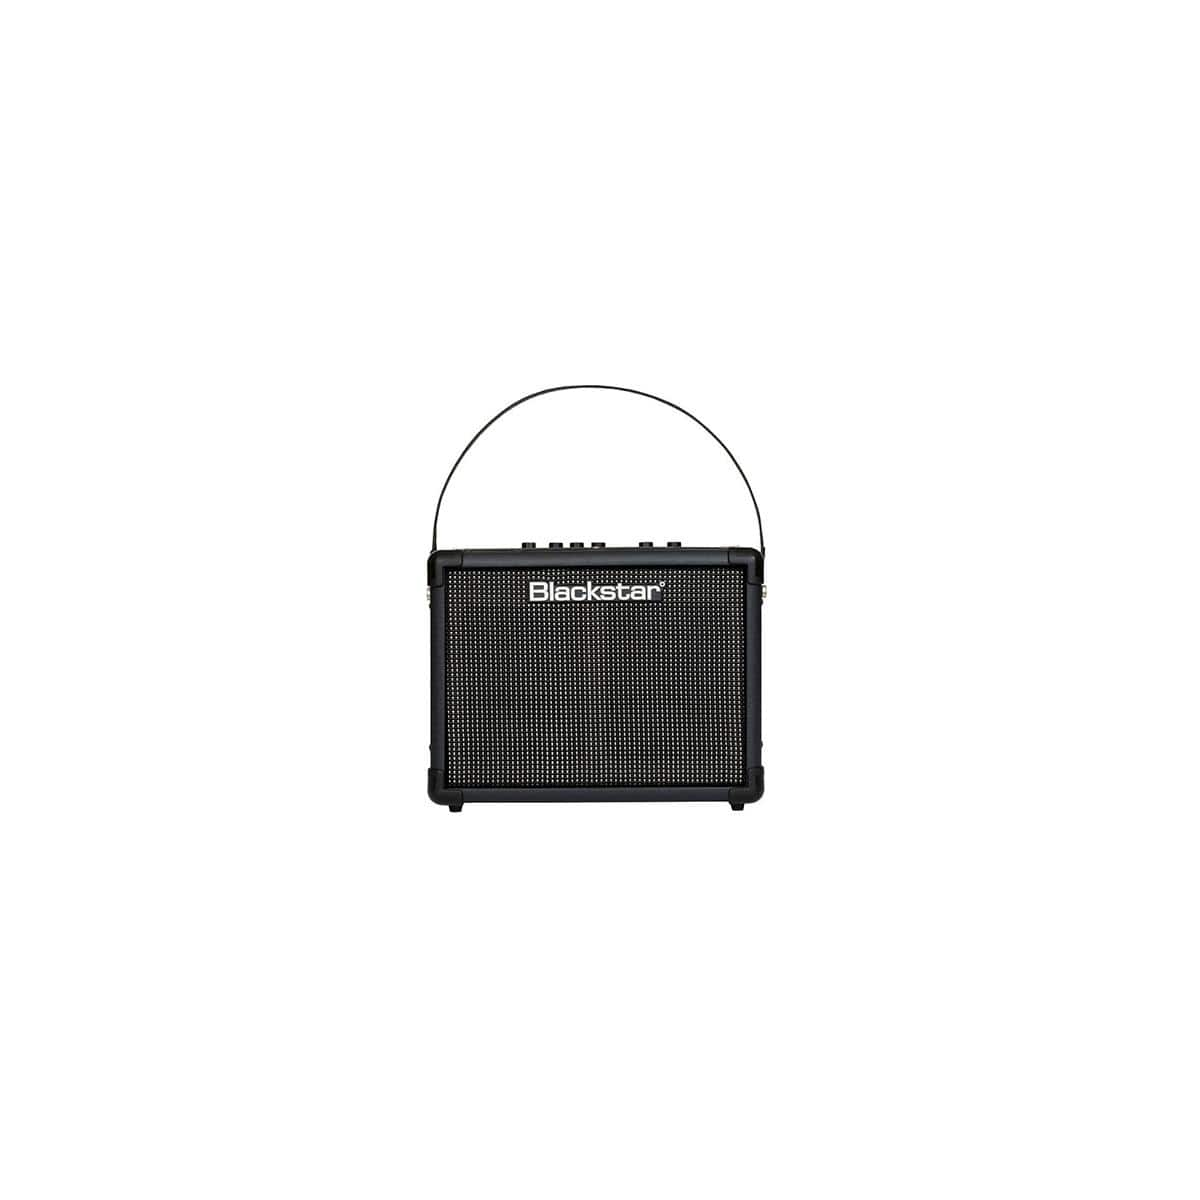 Blackstar ID: Core Stereo 10W Super Wide Combo Guitar Amplifier $75 + Free Shipping